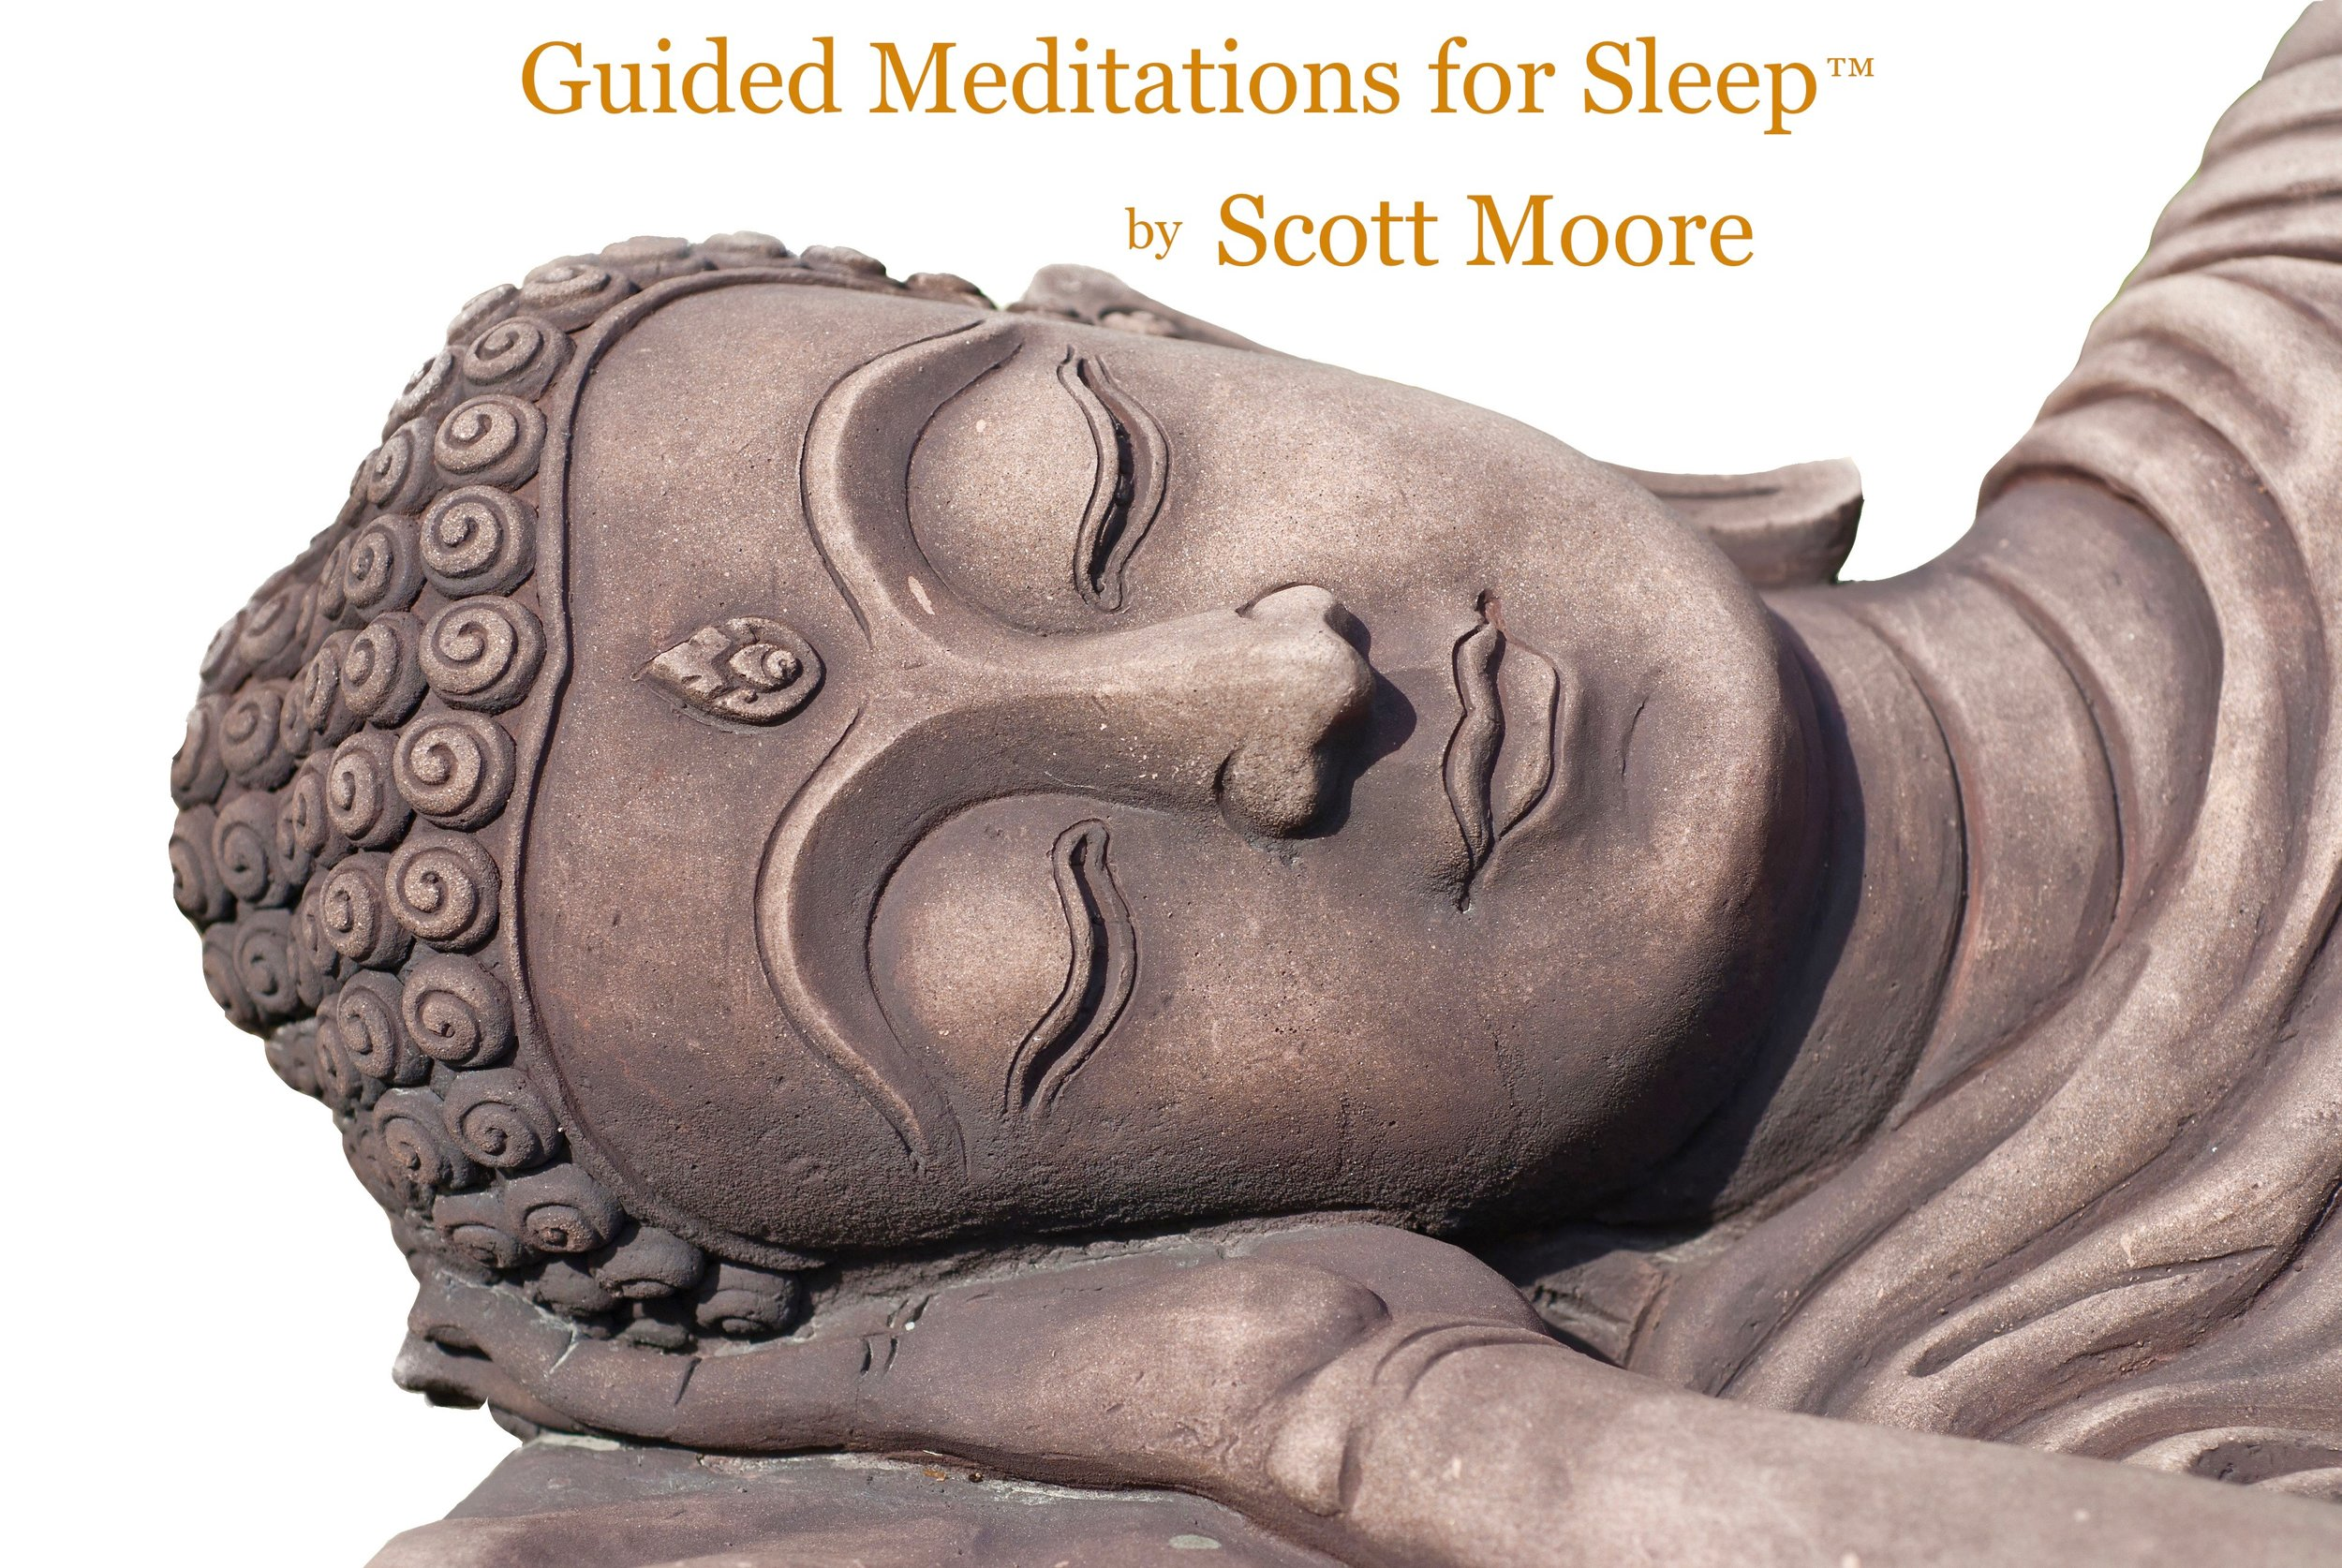 Guided Meditations for Sleep